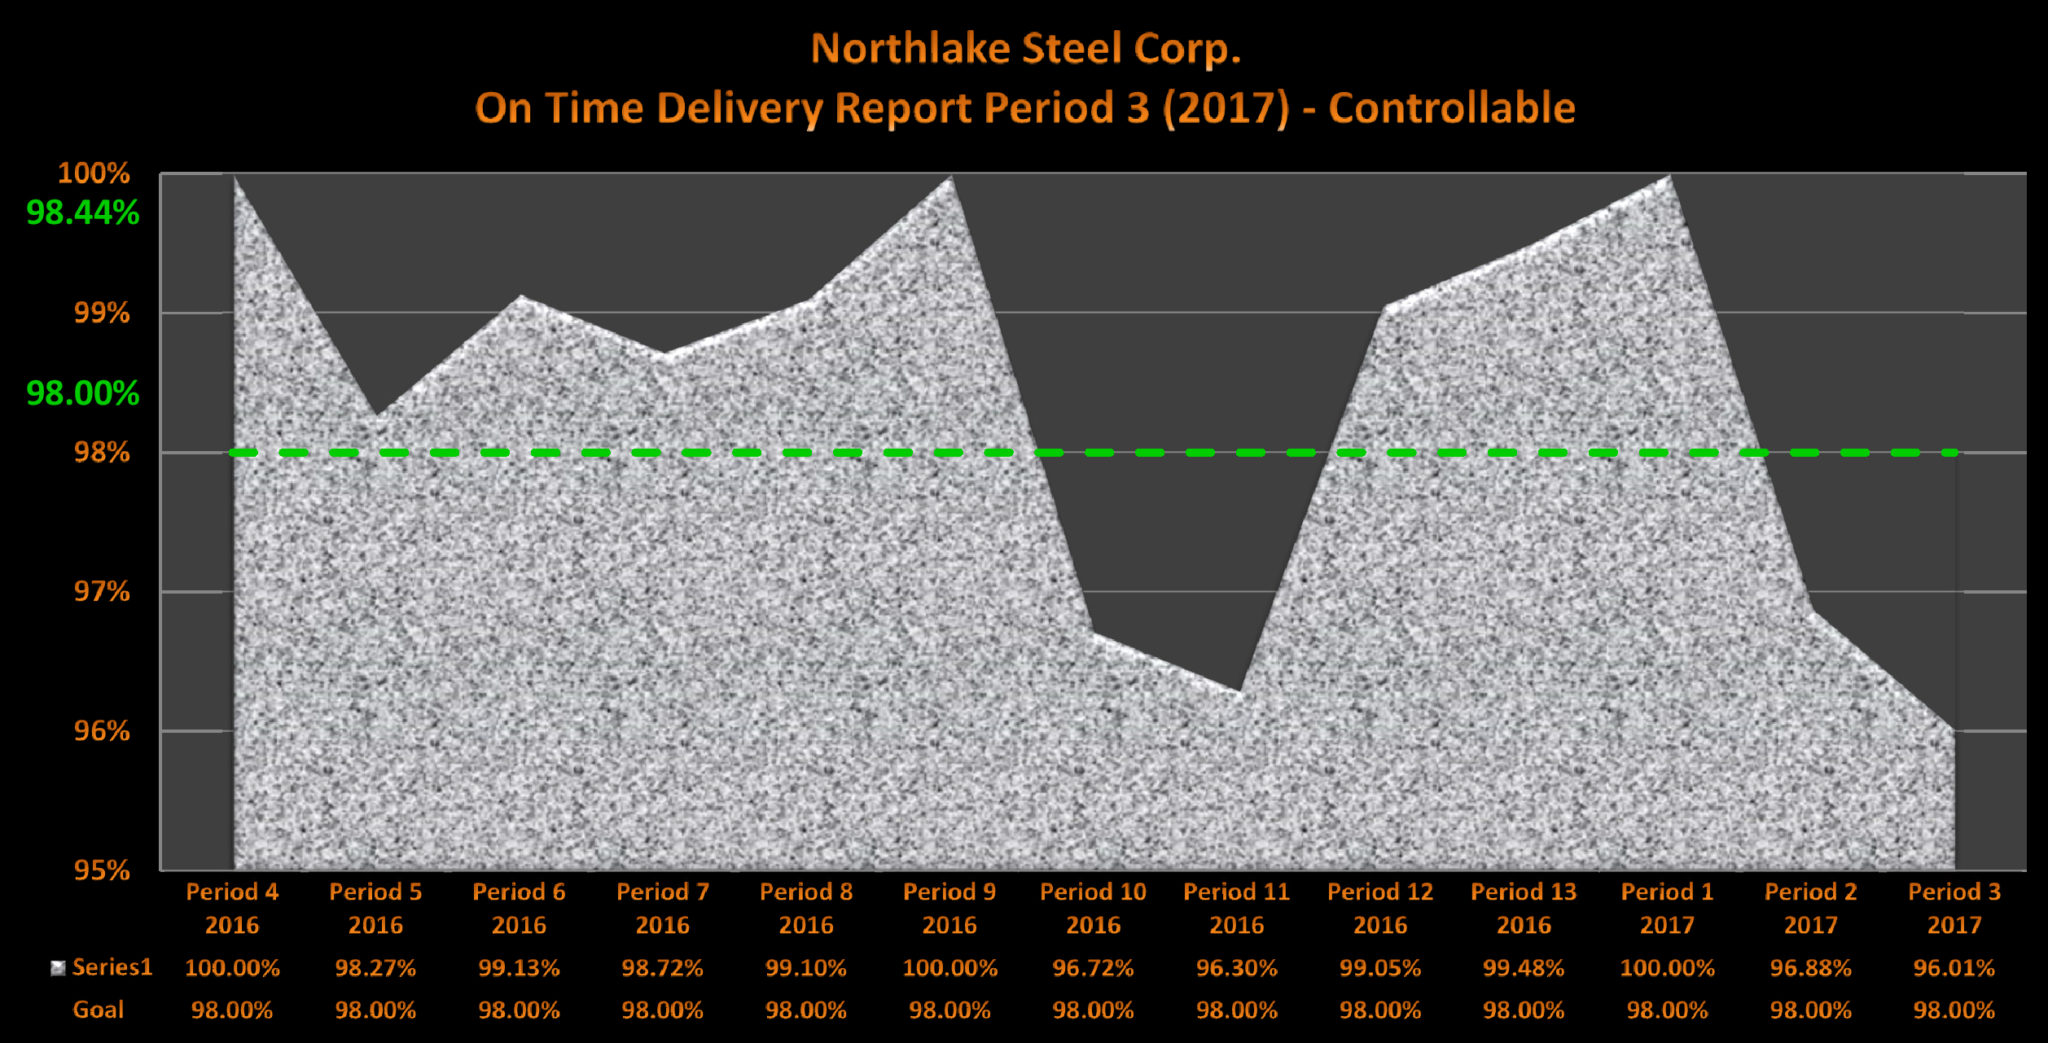 Northlake Steel 2017 Period 3 On Time Delivery